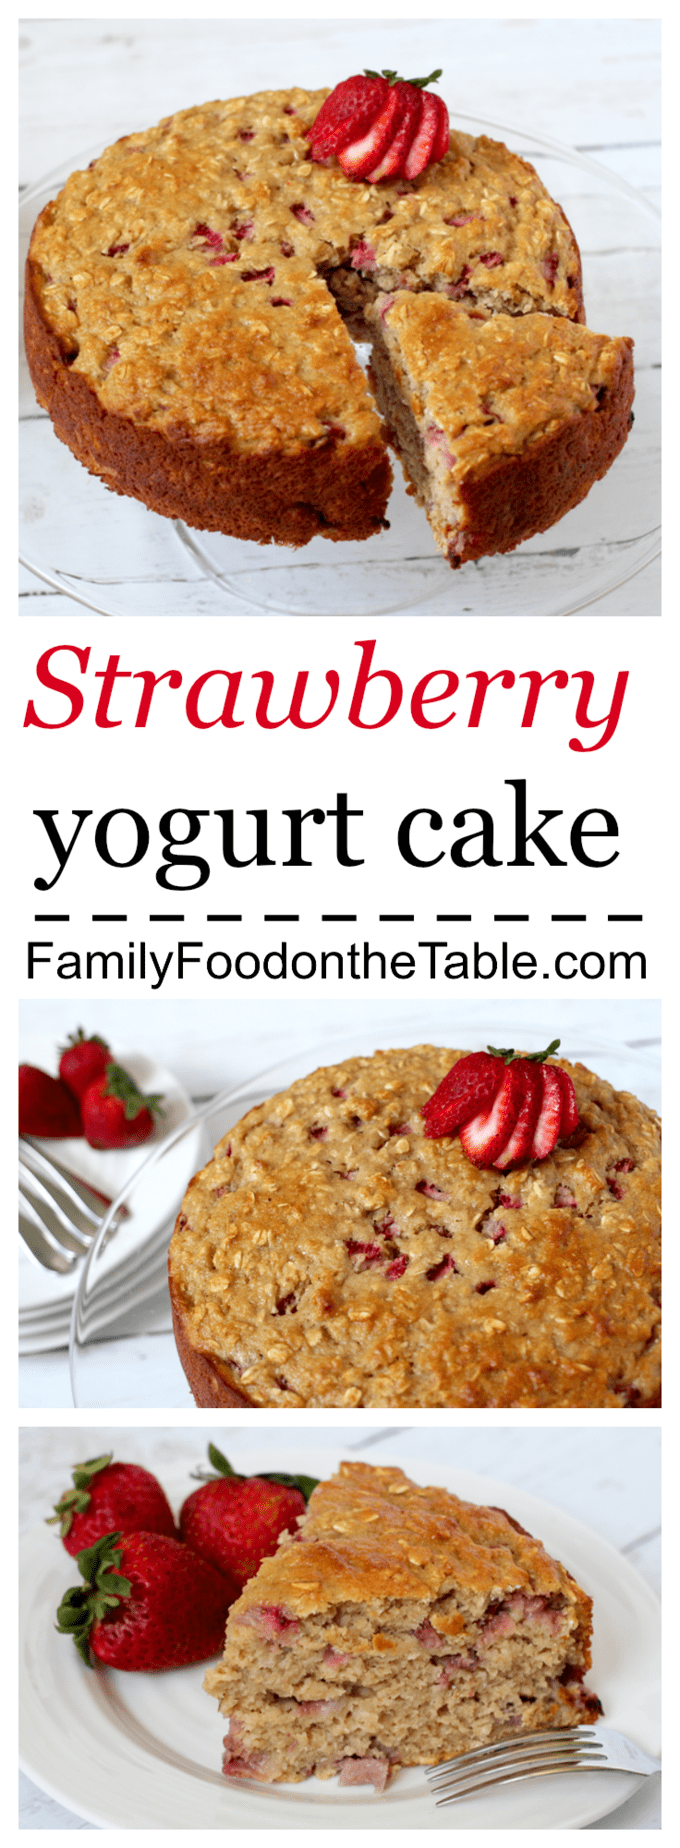 Healthy strawberry yogurt cake - no oil or butter!